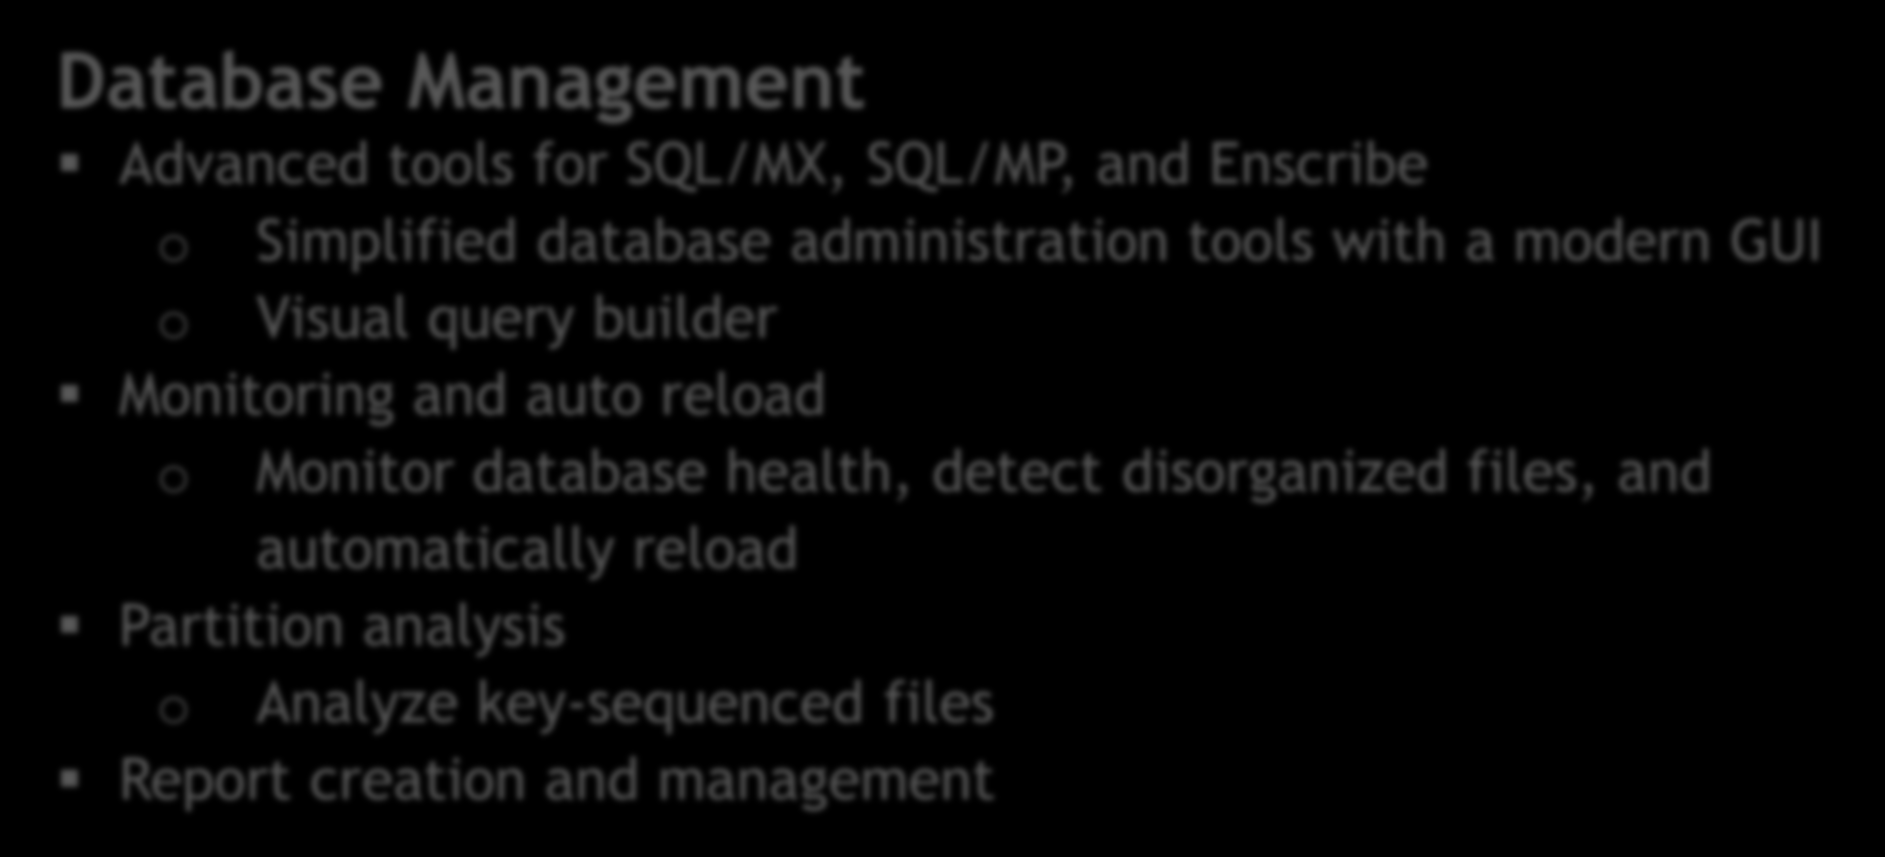 Database Management Advanced tools for SQL/MX, SQL/MP, and Enscribe o Simplified database administration tools with a modern GUI o Visual query builder Monitoring and auto reload o Monitor database